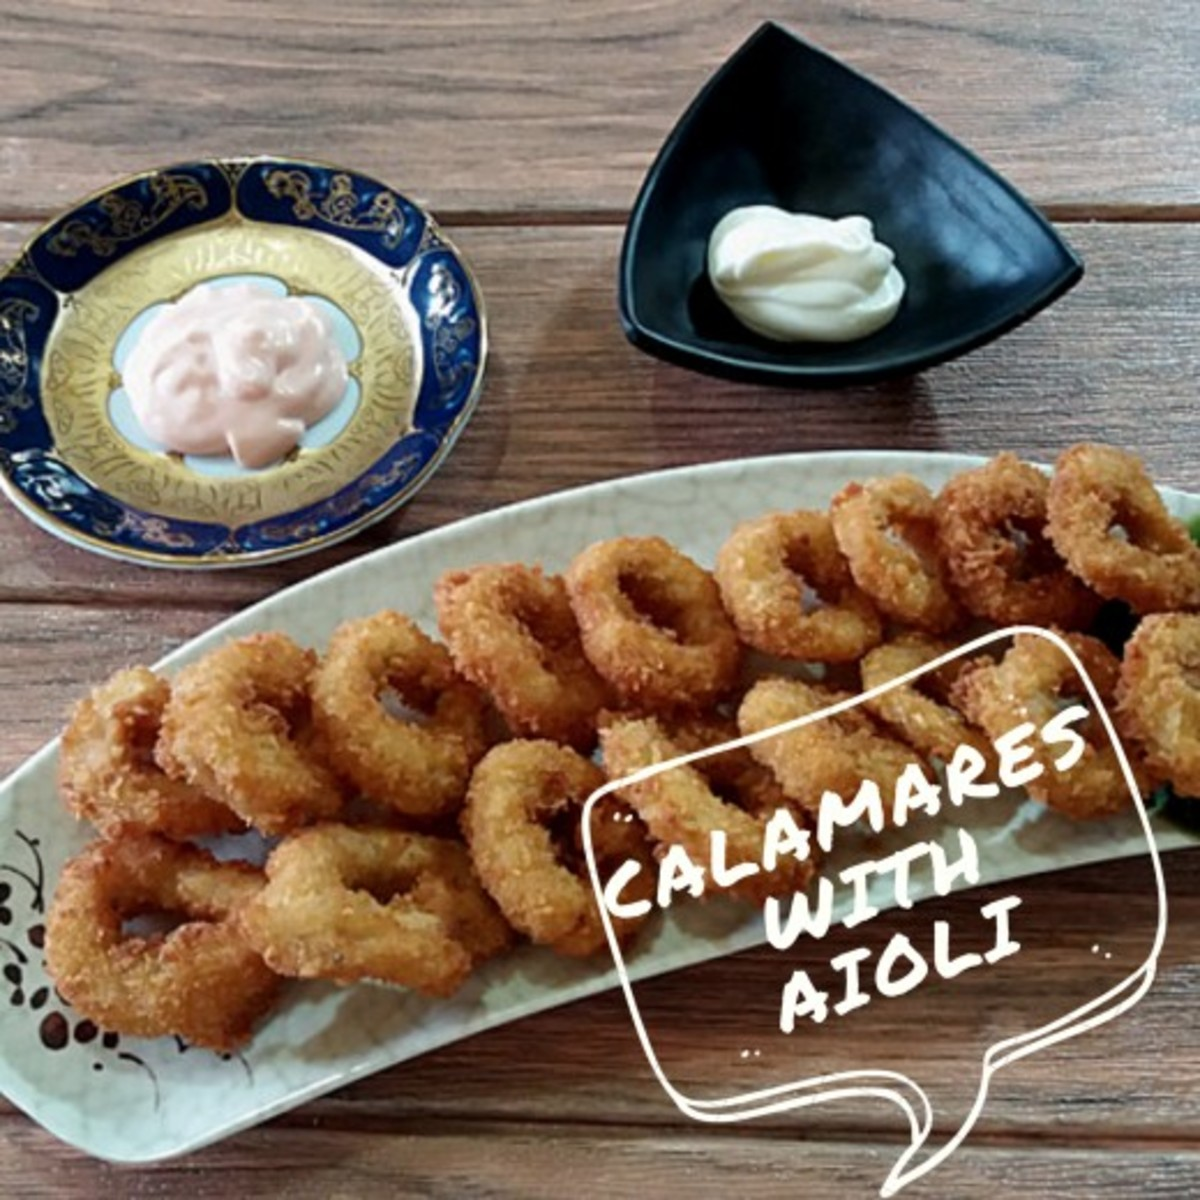 How to Cook Calamares Fritos With Aioli